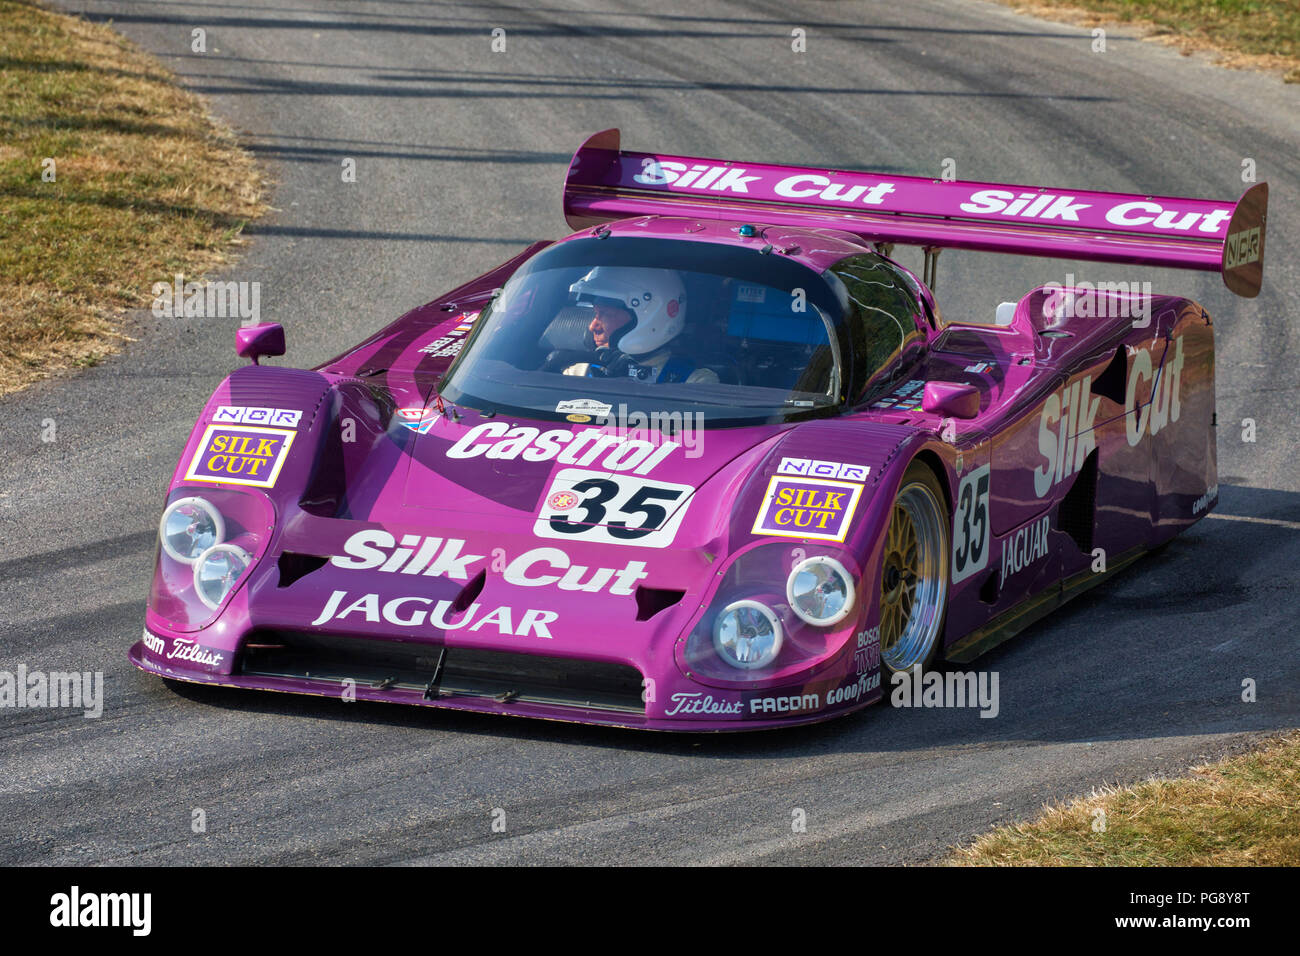 1988 Silk Cut Jaguar XJR-9 LM Le Mans endurance racer with driver Gary Pearson at the 2018 Goodwood Festival of Speed, Sussex, UK. - Stock Image